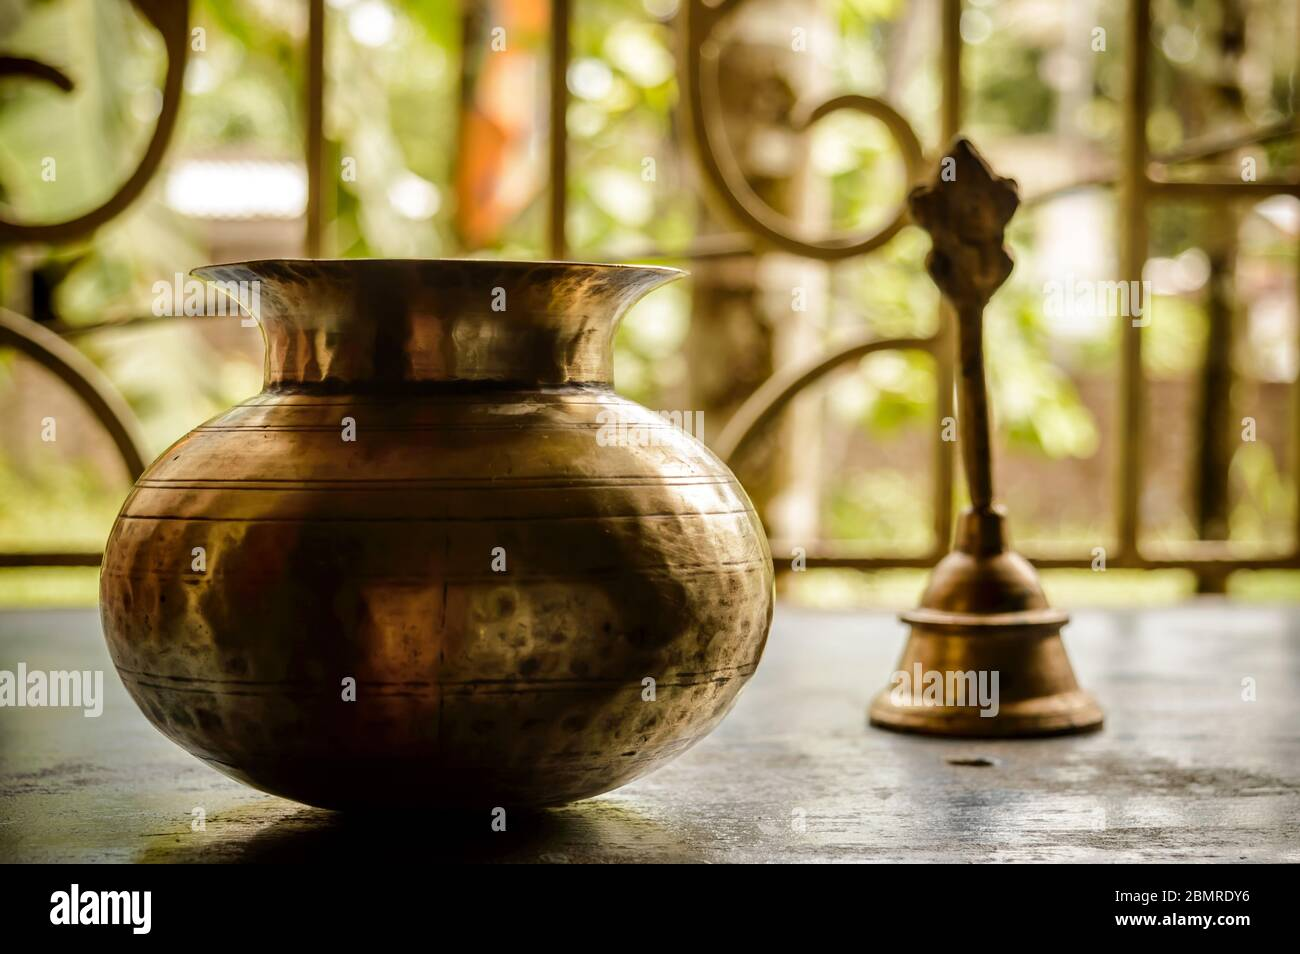 Close up Still Life of antique Holi water pot and bell on rustic floor. Faith, Tradition, Spirituality, Prayer, symbols of peace and Religious Themes. Stock Photo